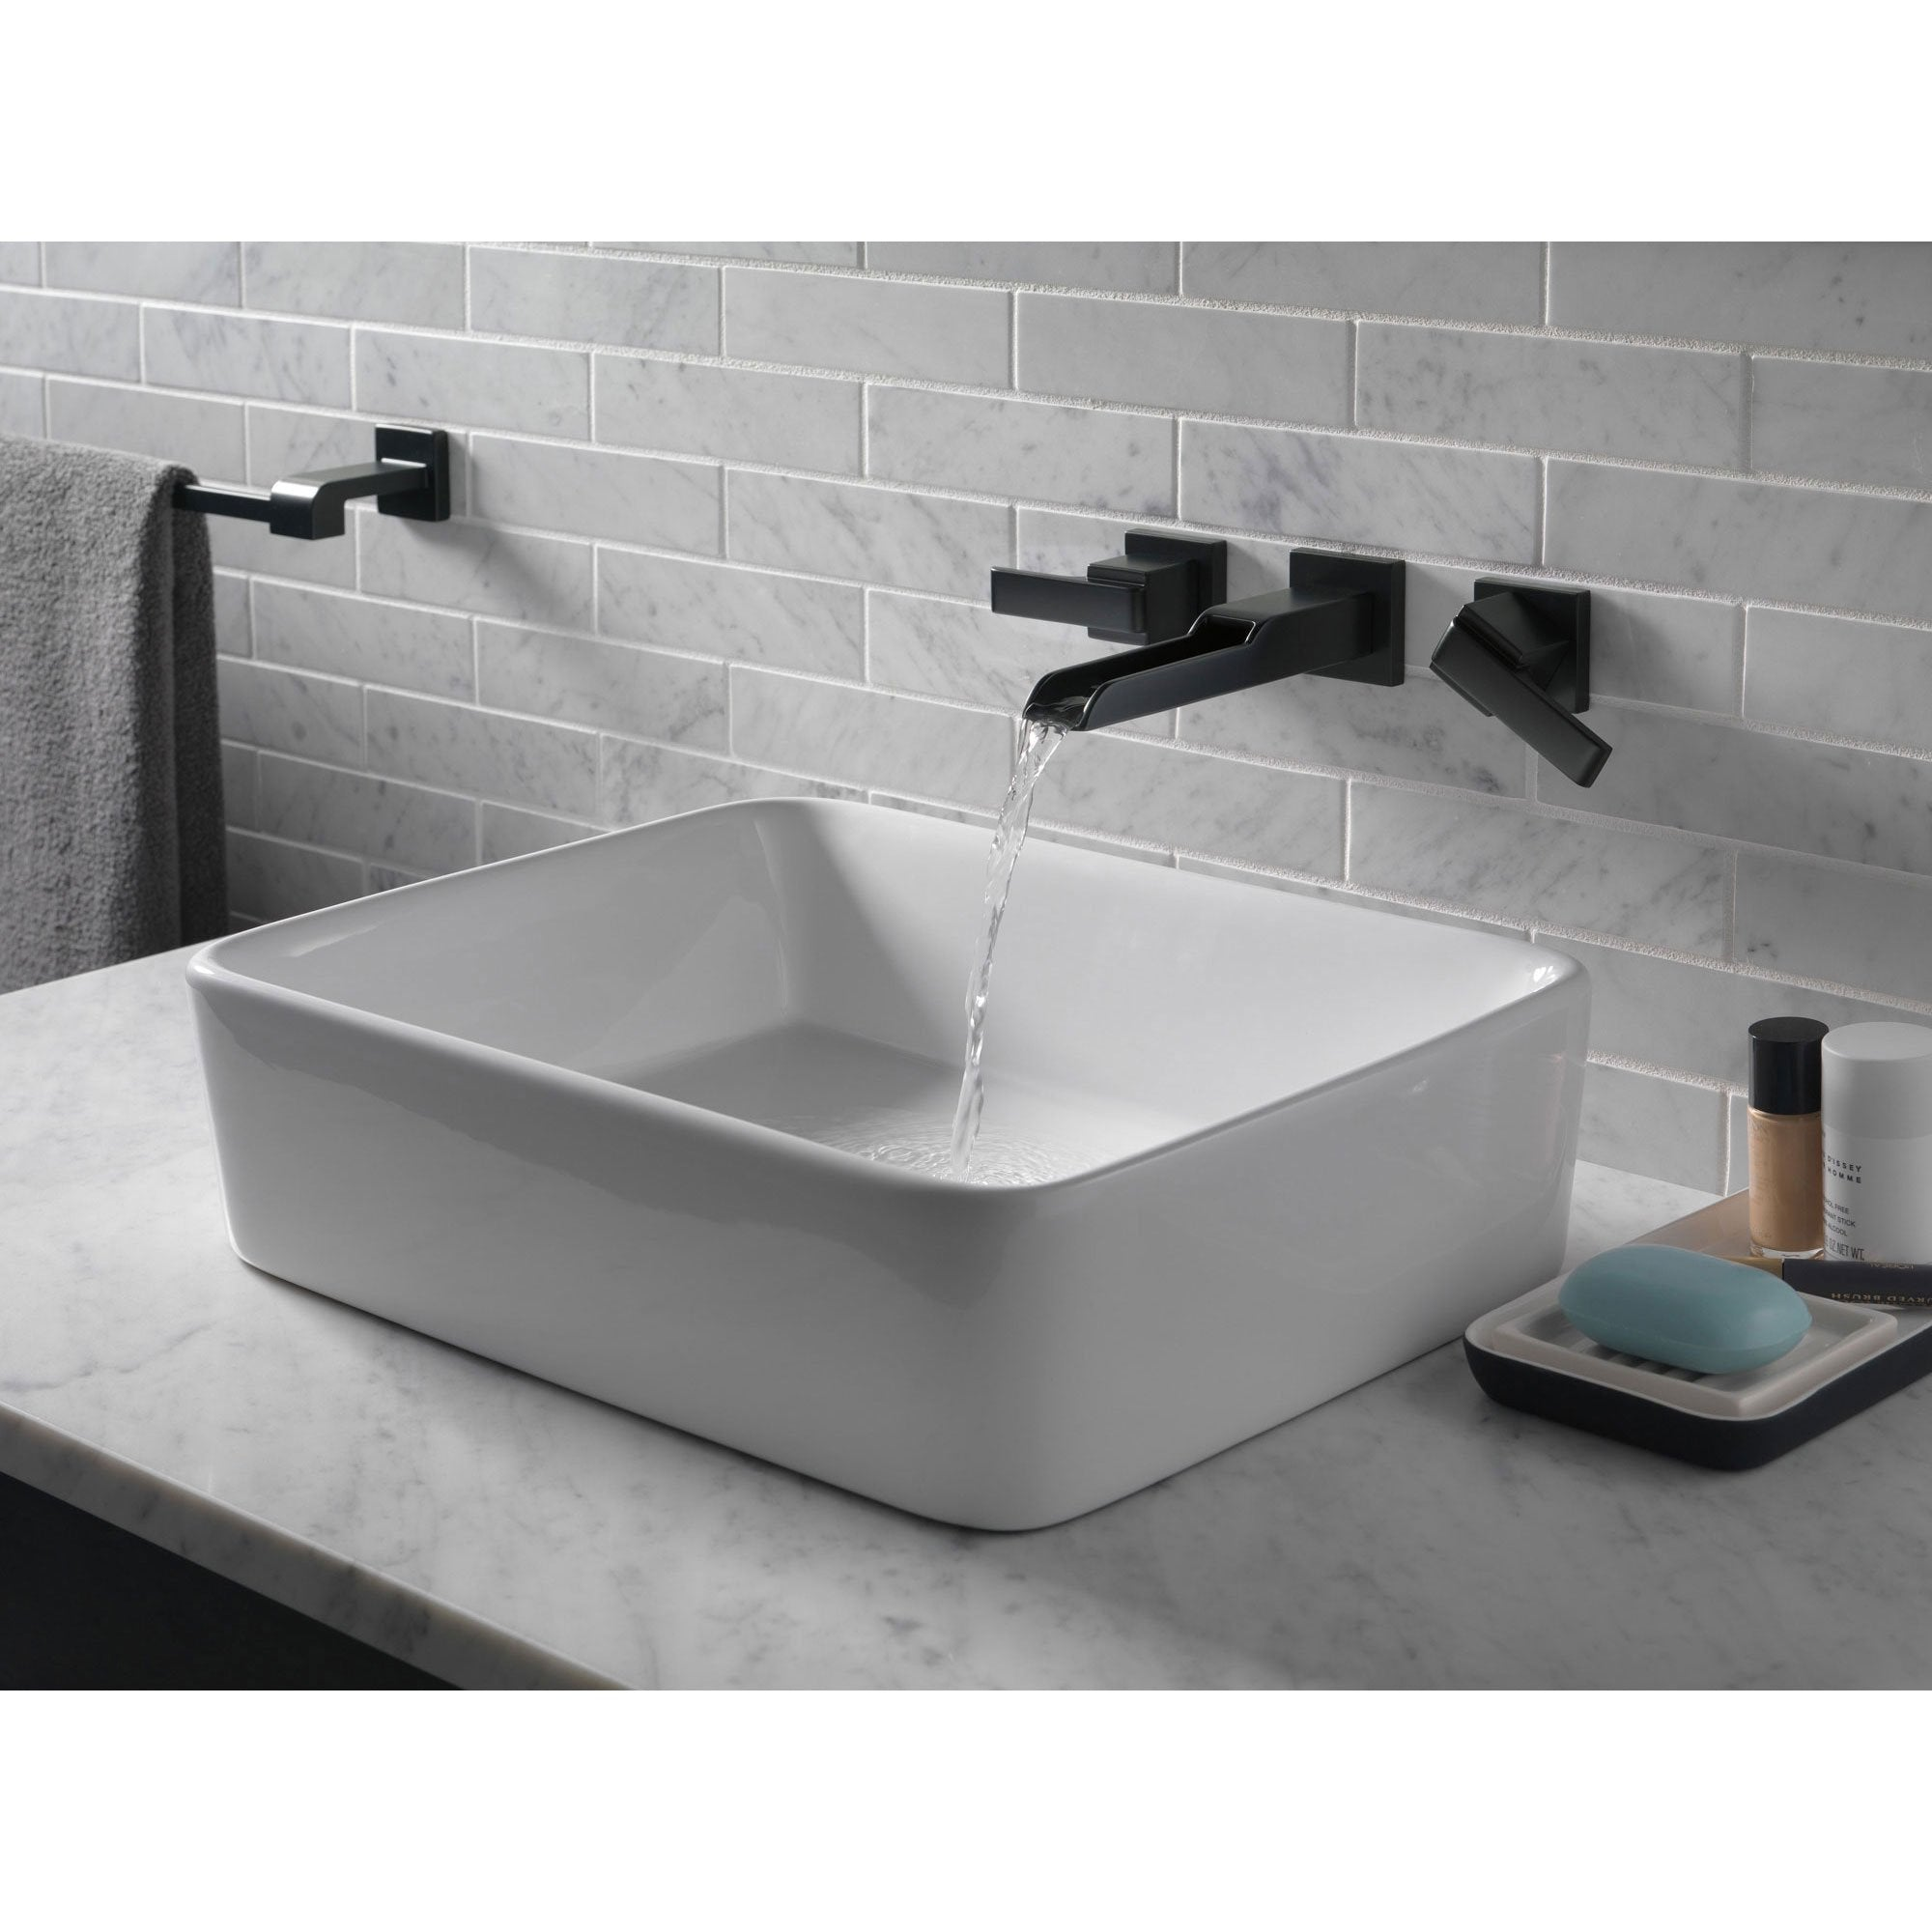 faucets sink faucet keenan supply htm dnb dornbracht bathroom wall mounted lavatory mount